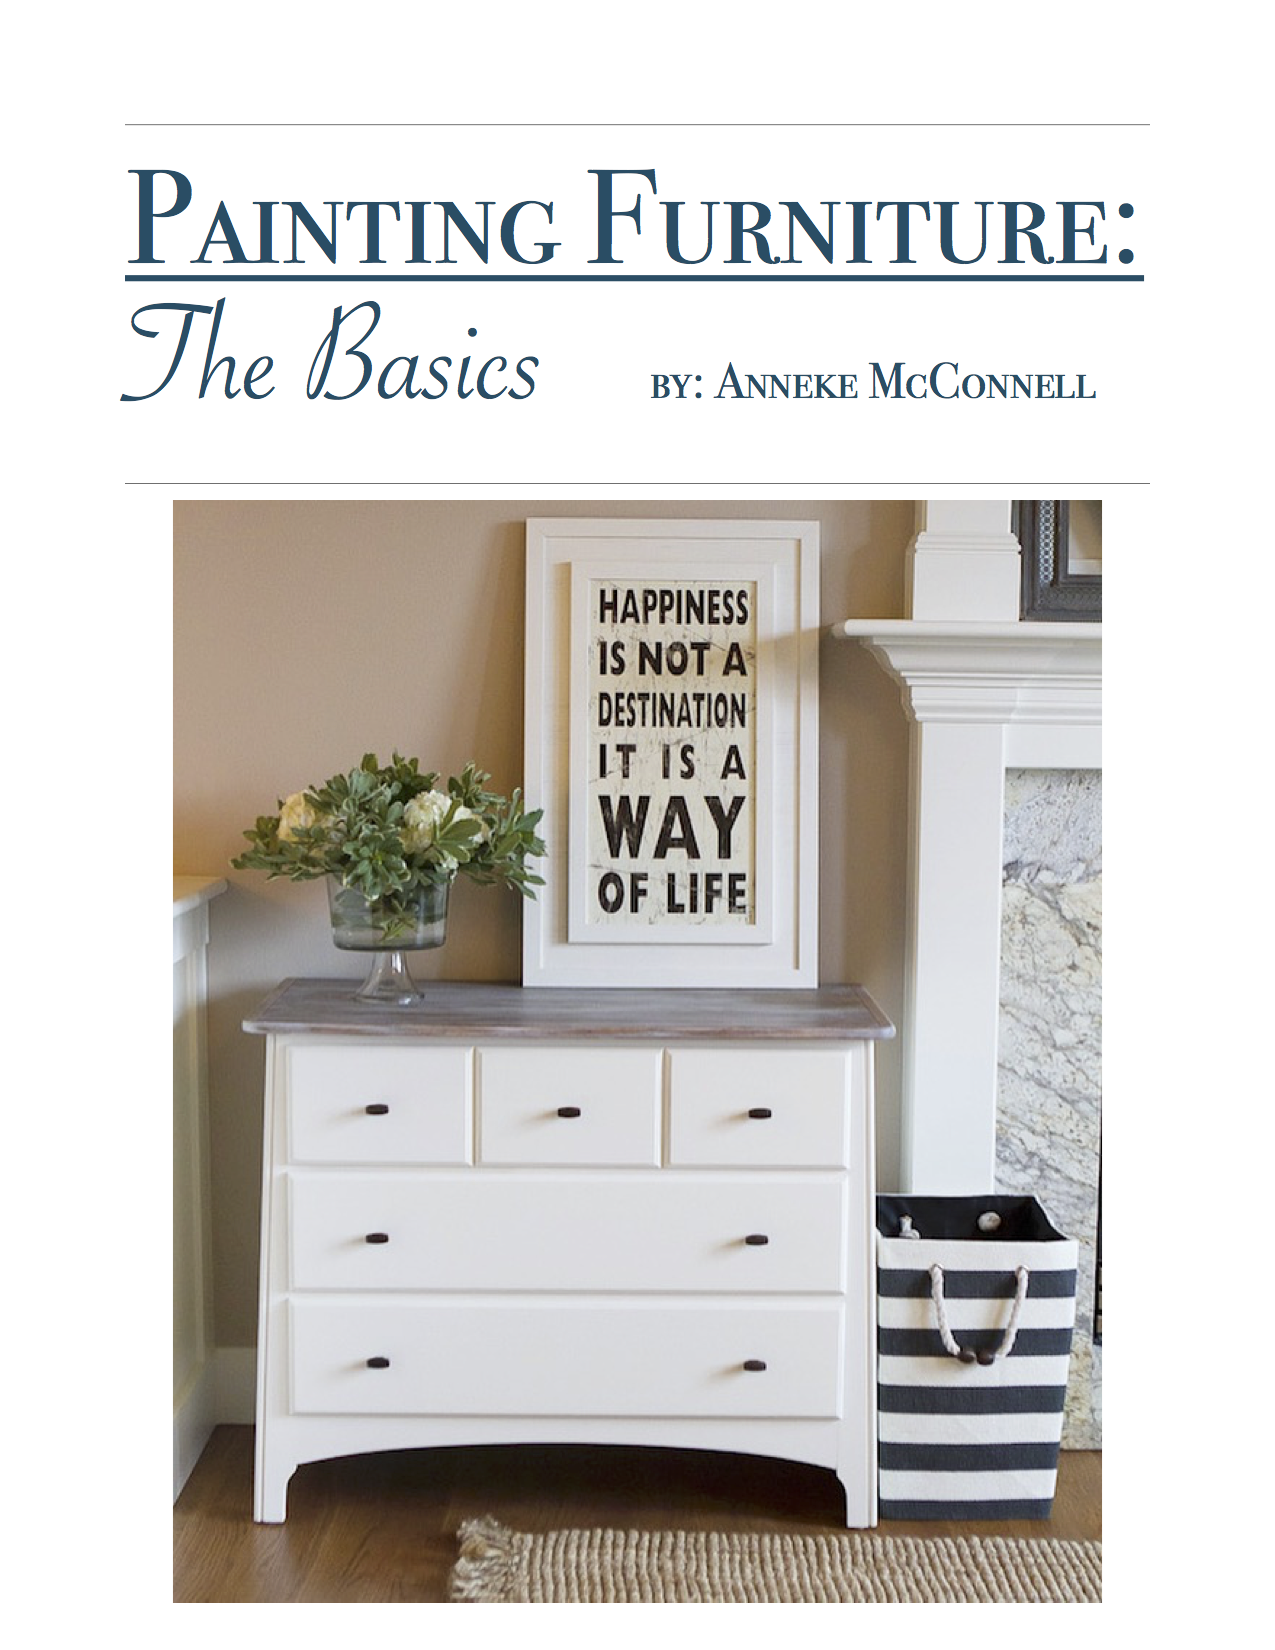 How To Paint Furniture the easy way